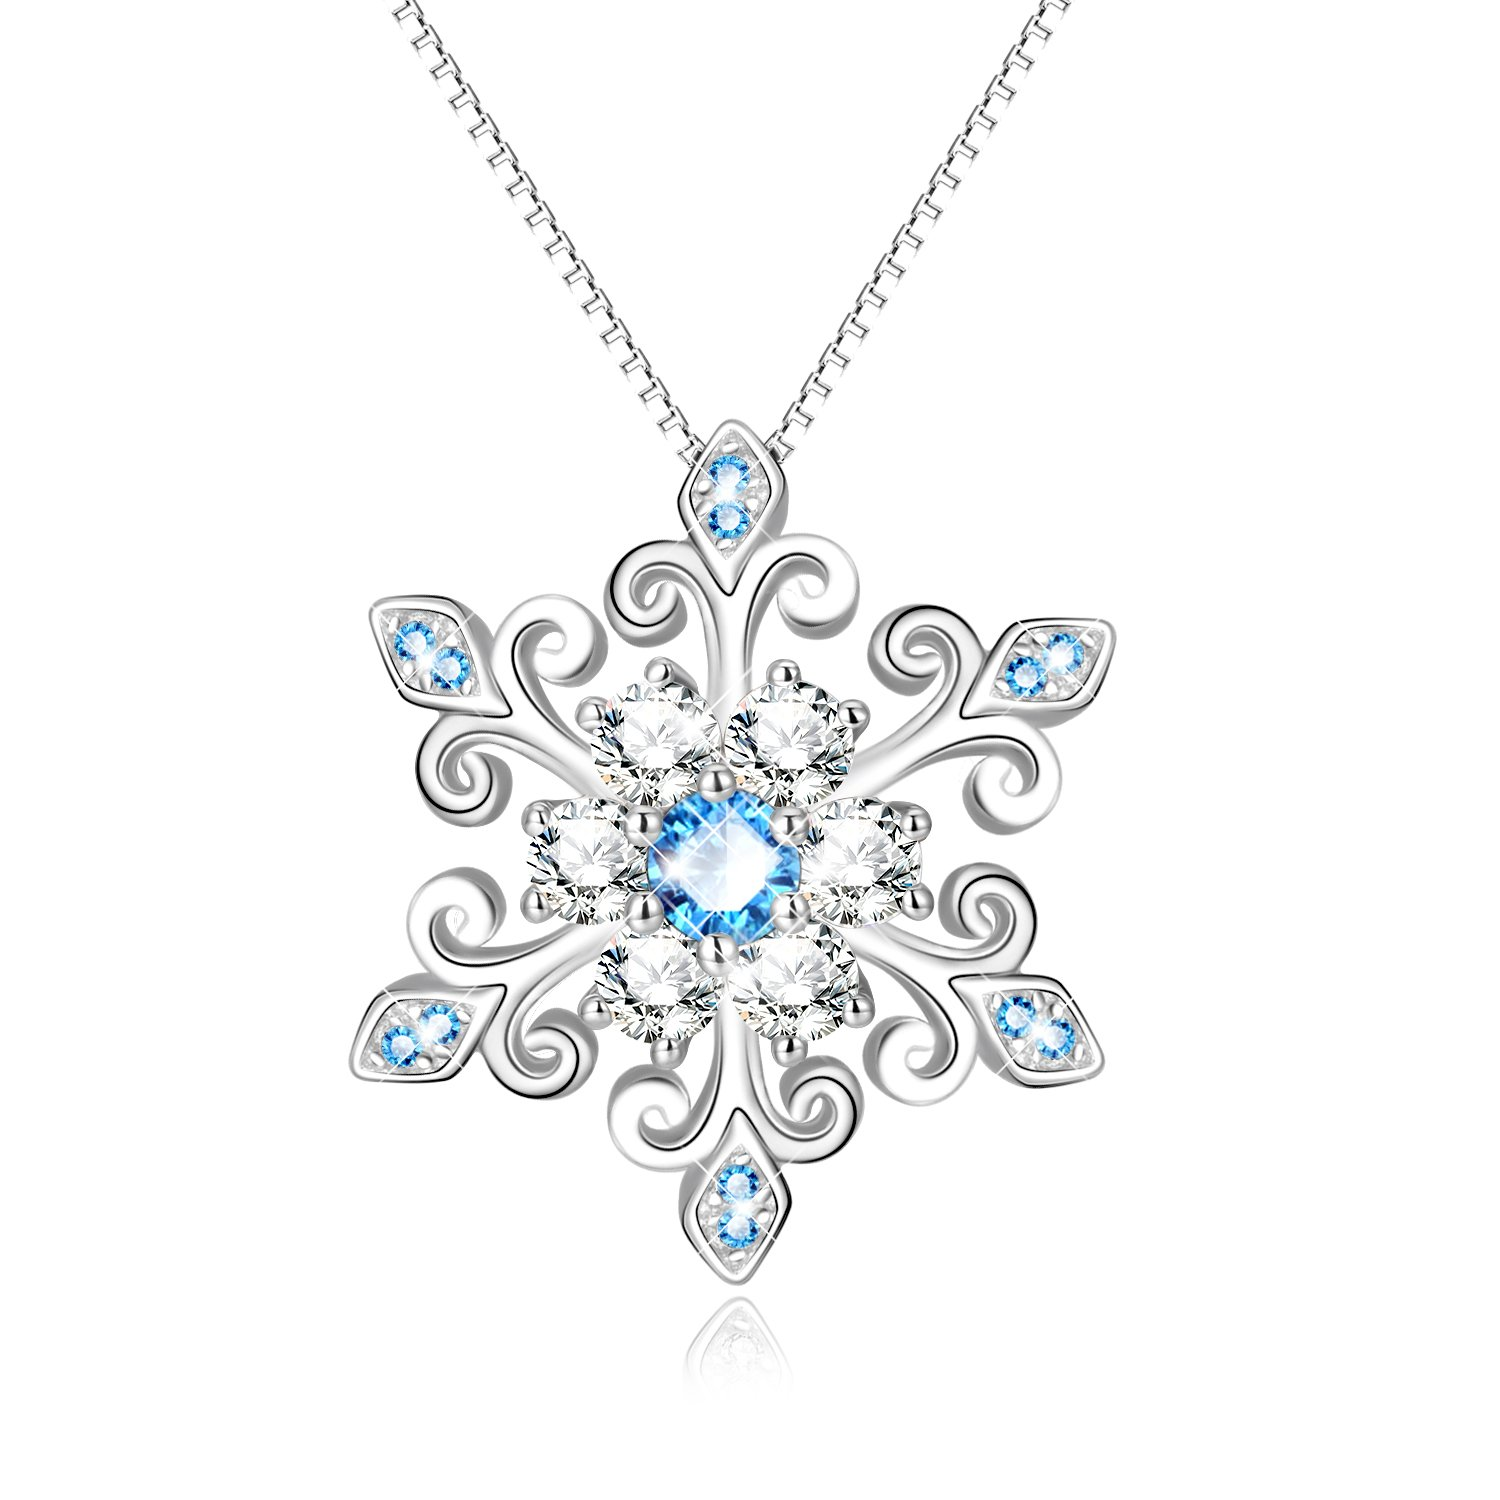 925 Sterling Silver Snowflake Pendant Necklace Blue and White Fleur De Lis, Romantic Jewelry Gift for Her Birthday